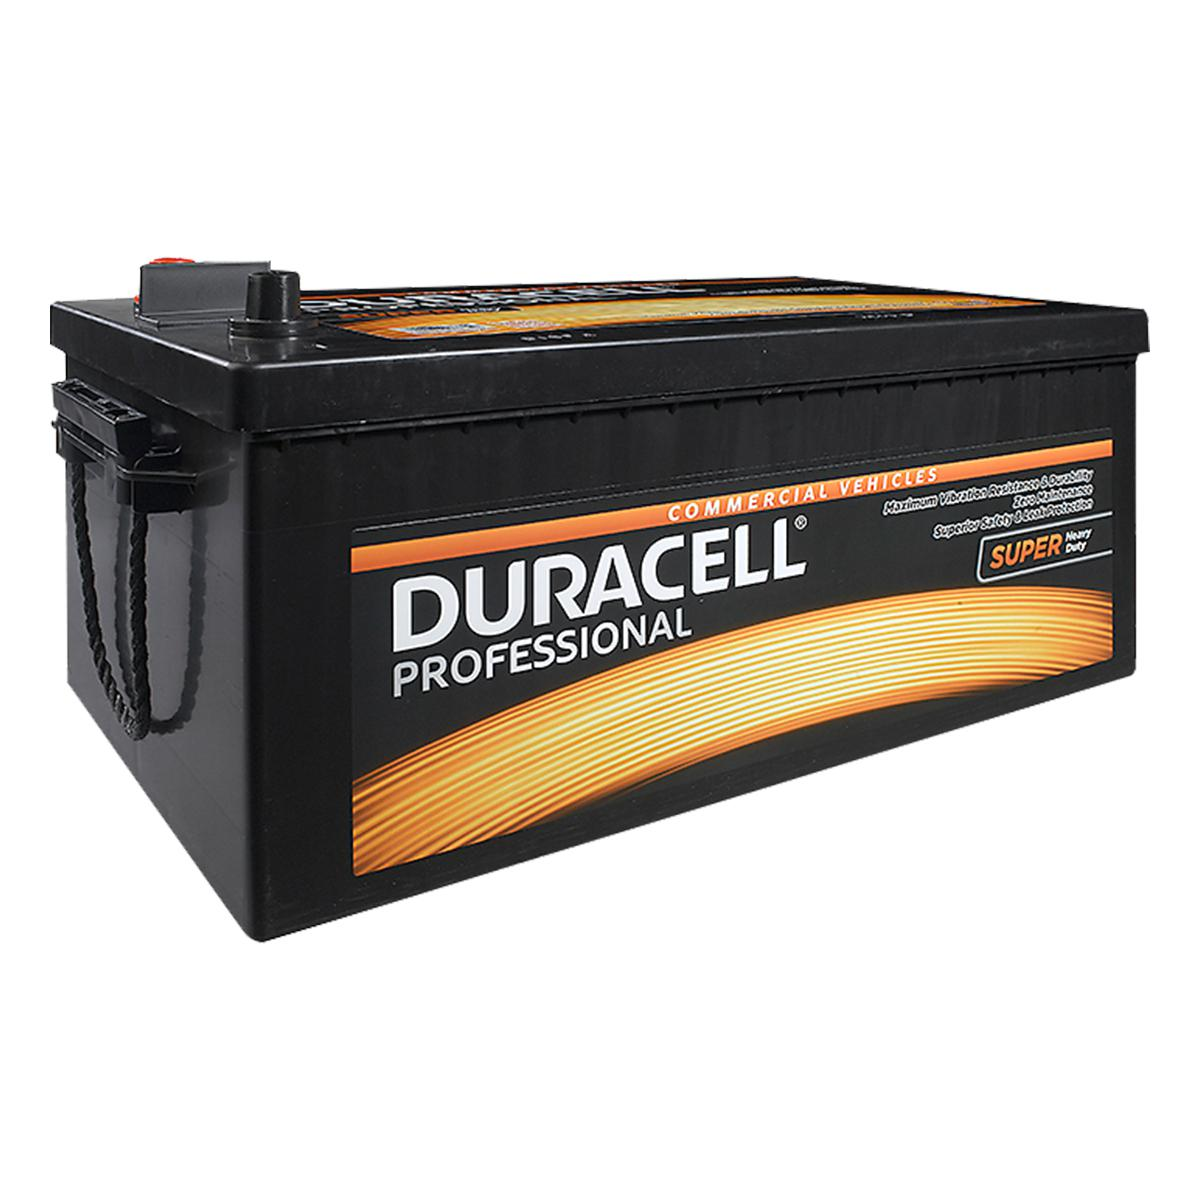 Duracell 632SHD / DP225SHD Professional Commercial Vehicle